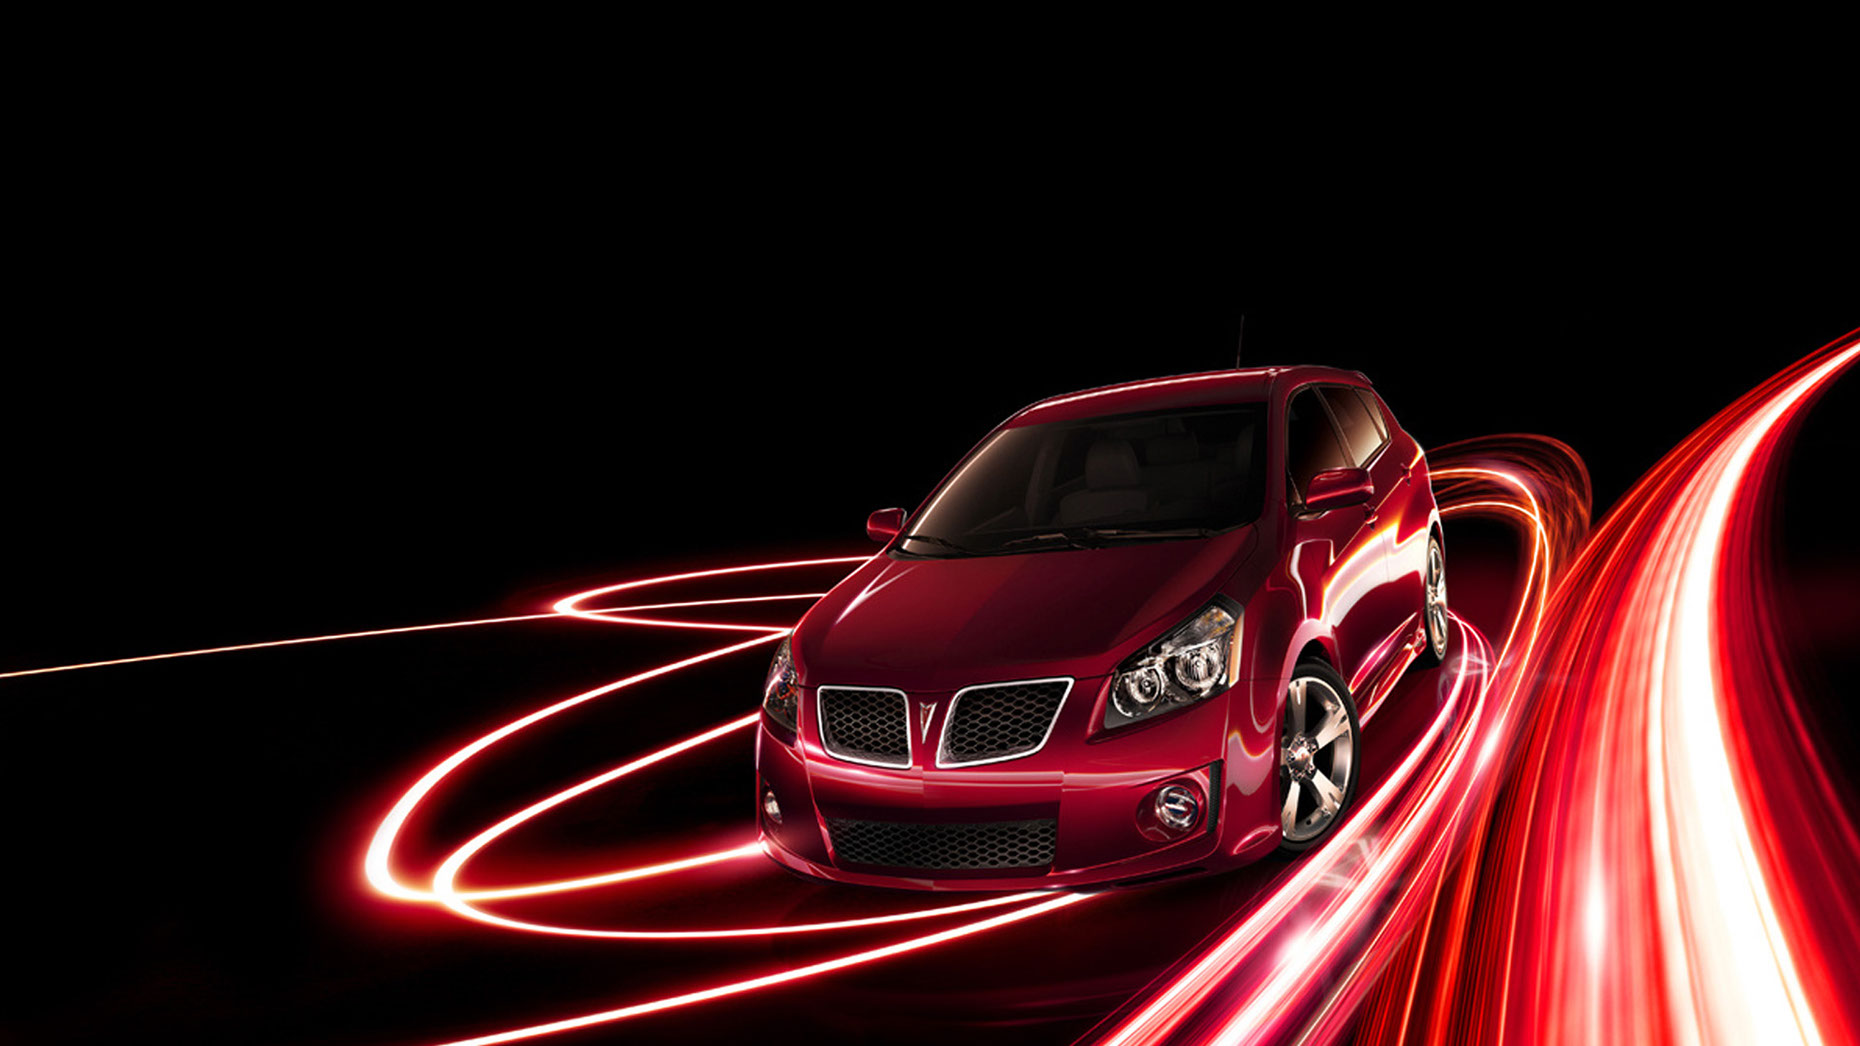 CGI-illustration-CGI_Vehicles_Chevy Red Lights